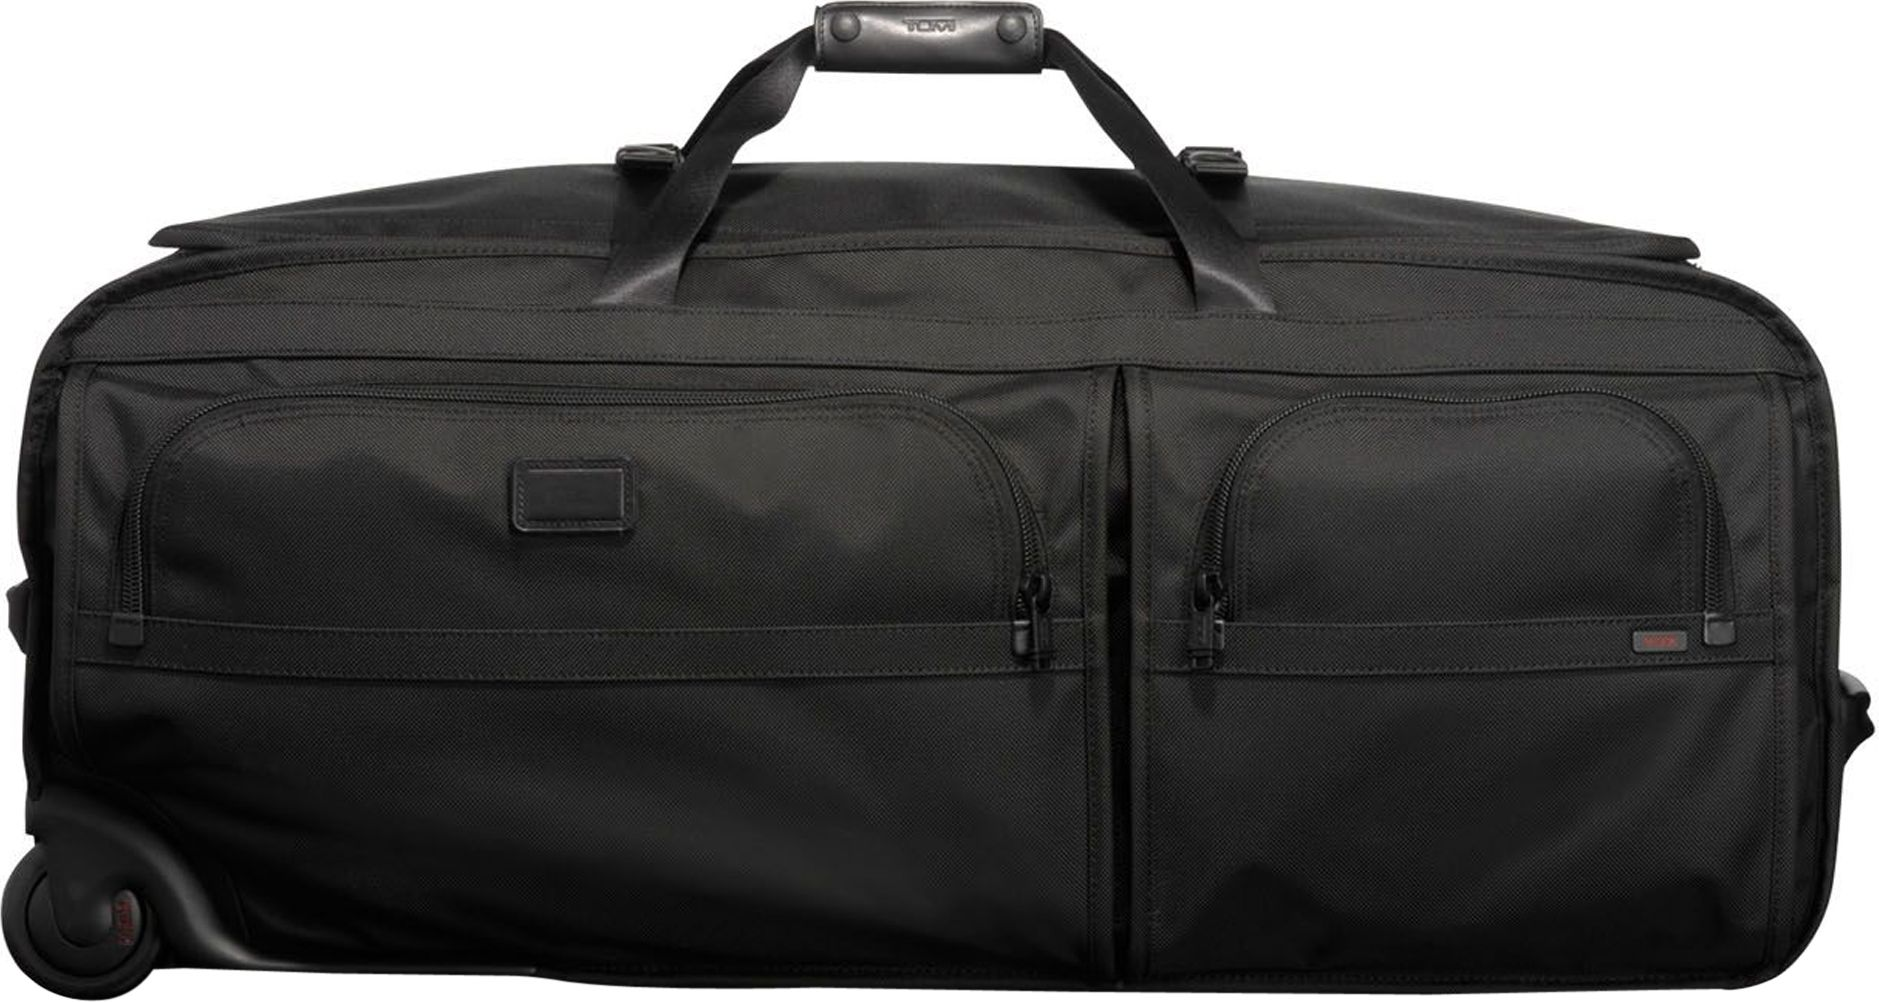 Large Duffle Bags With Wheels Best Reviews Ahoy Comics